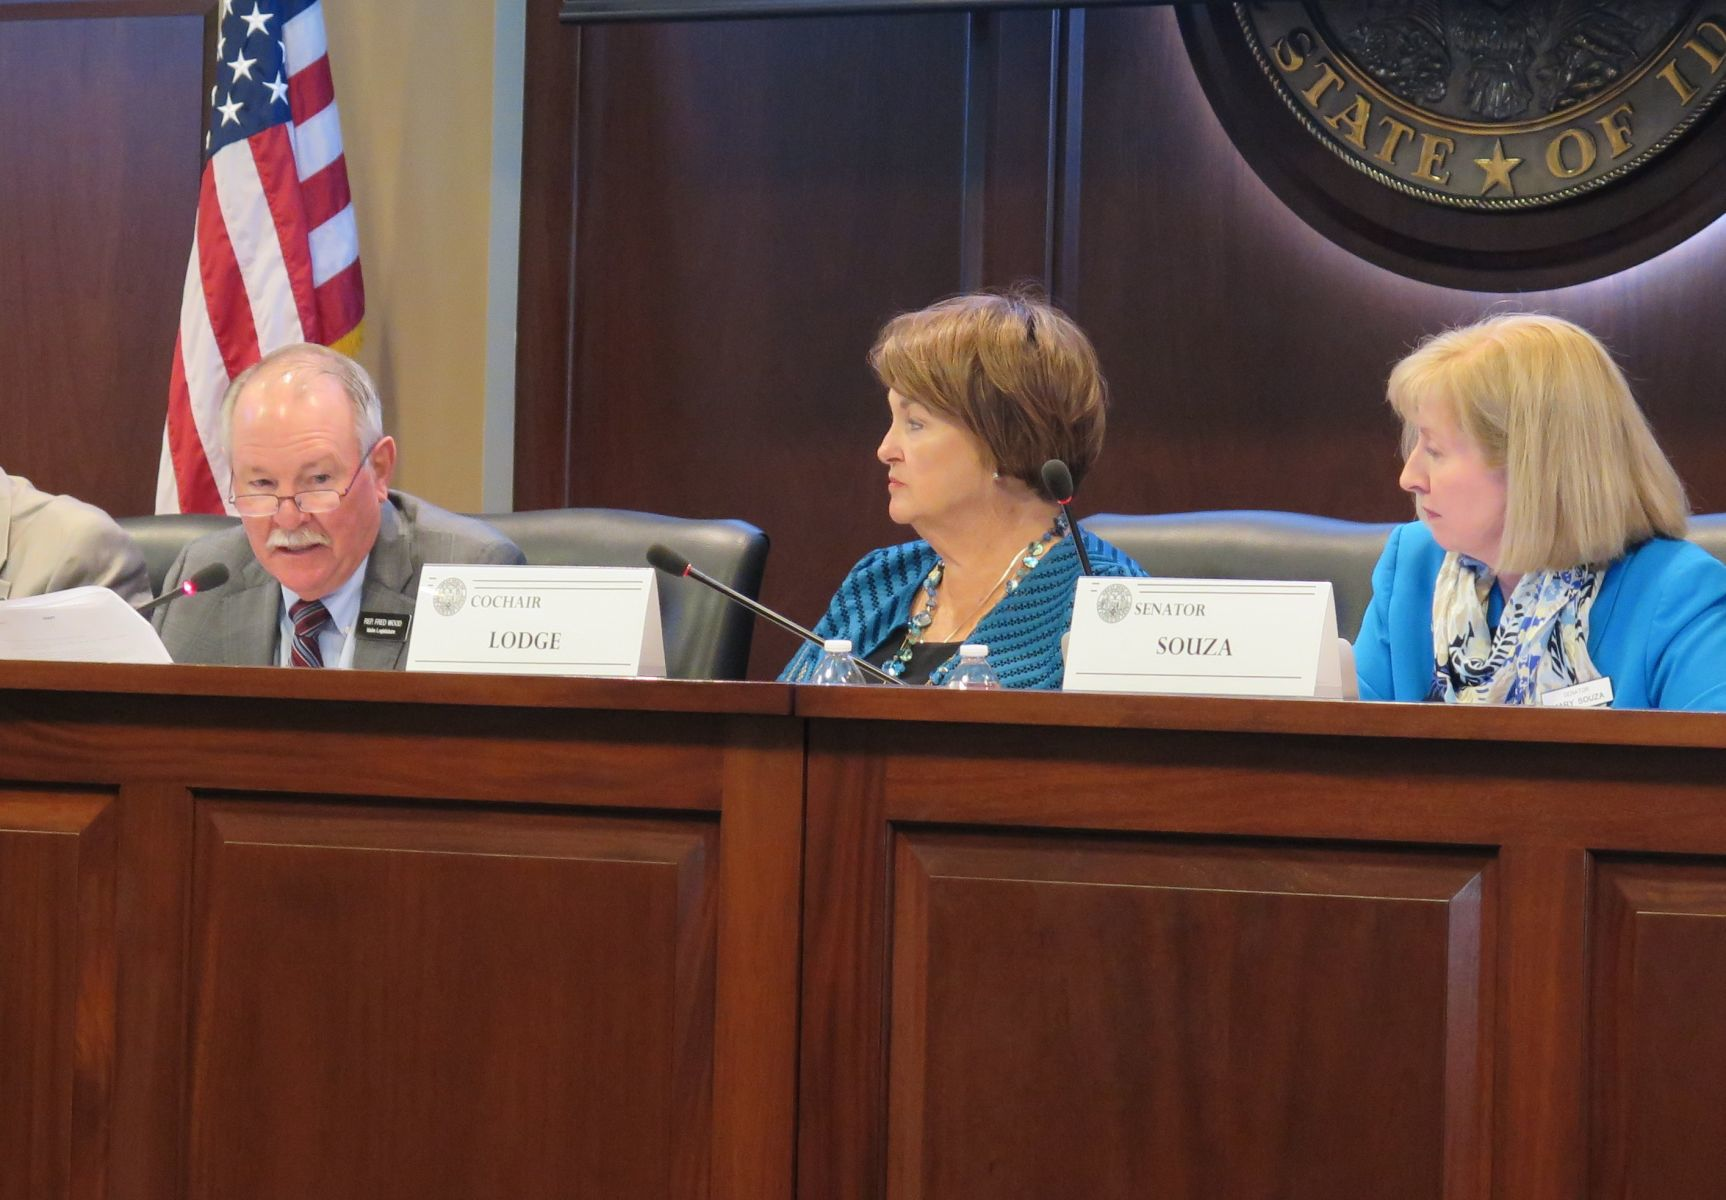 Lawmakers debate free speech, privacy, transparency, as they craft campaign reforms | Idaho Press